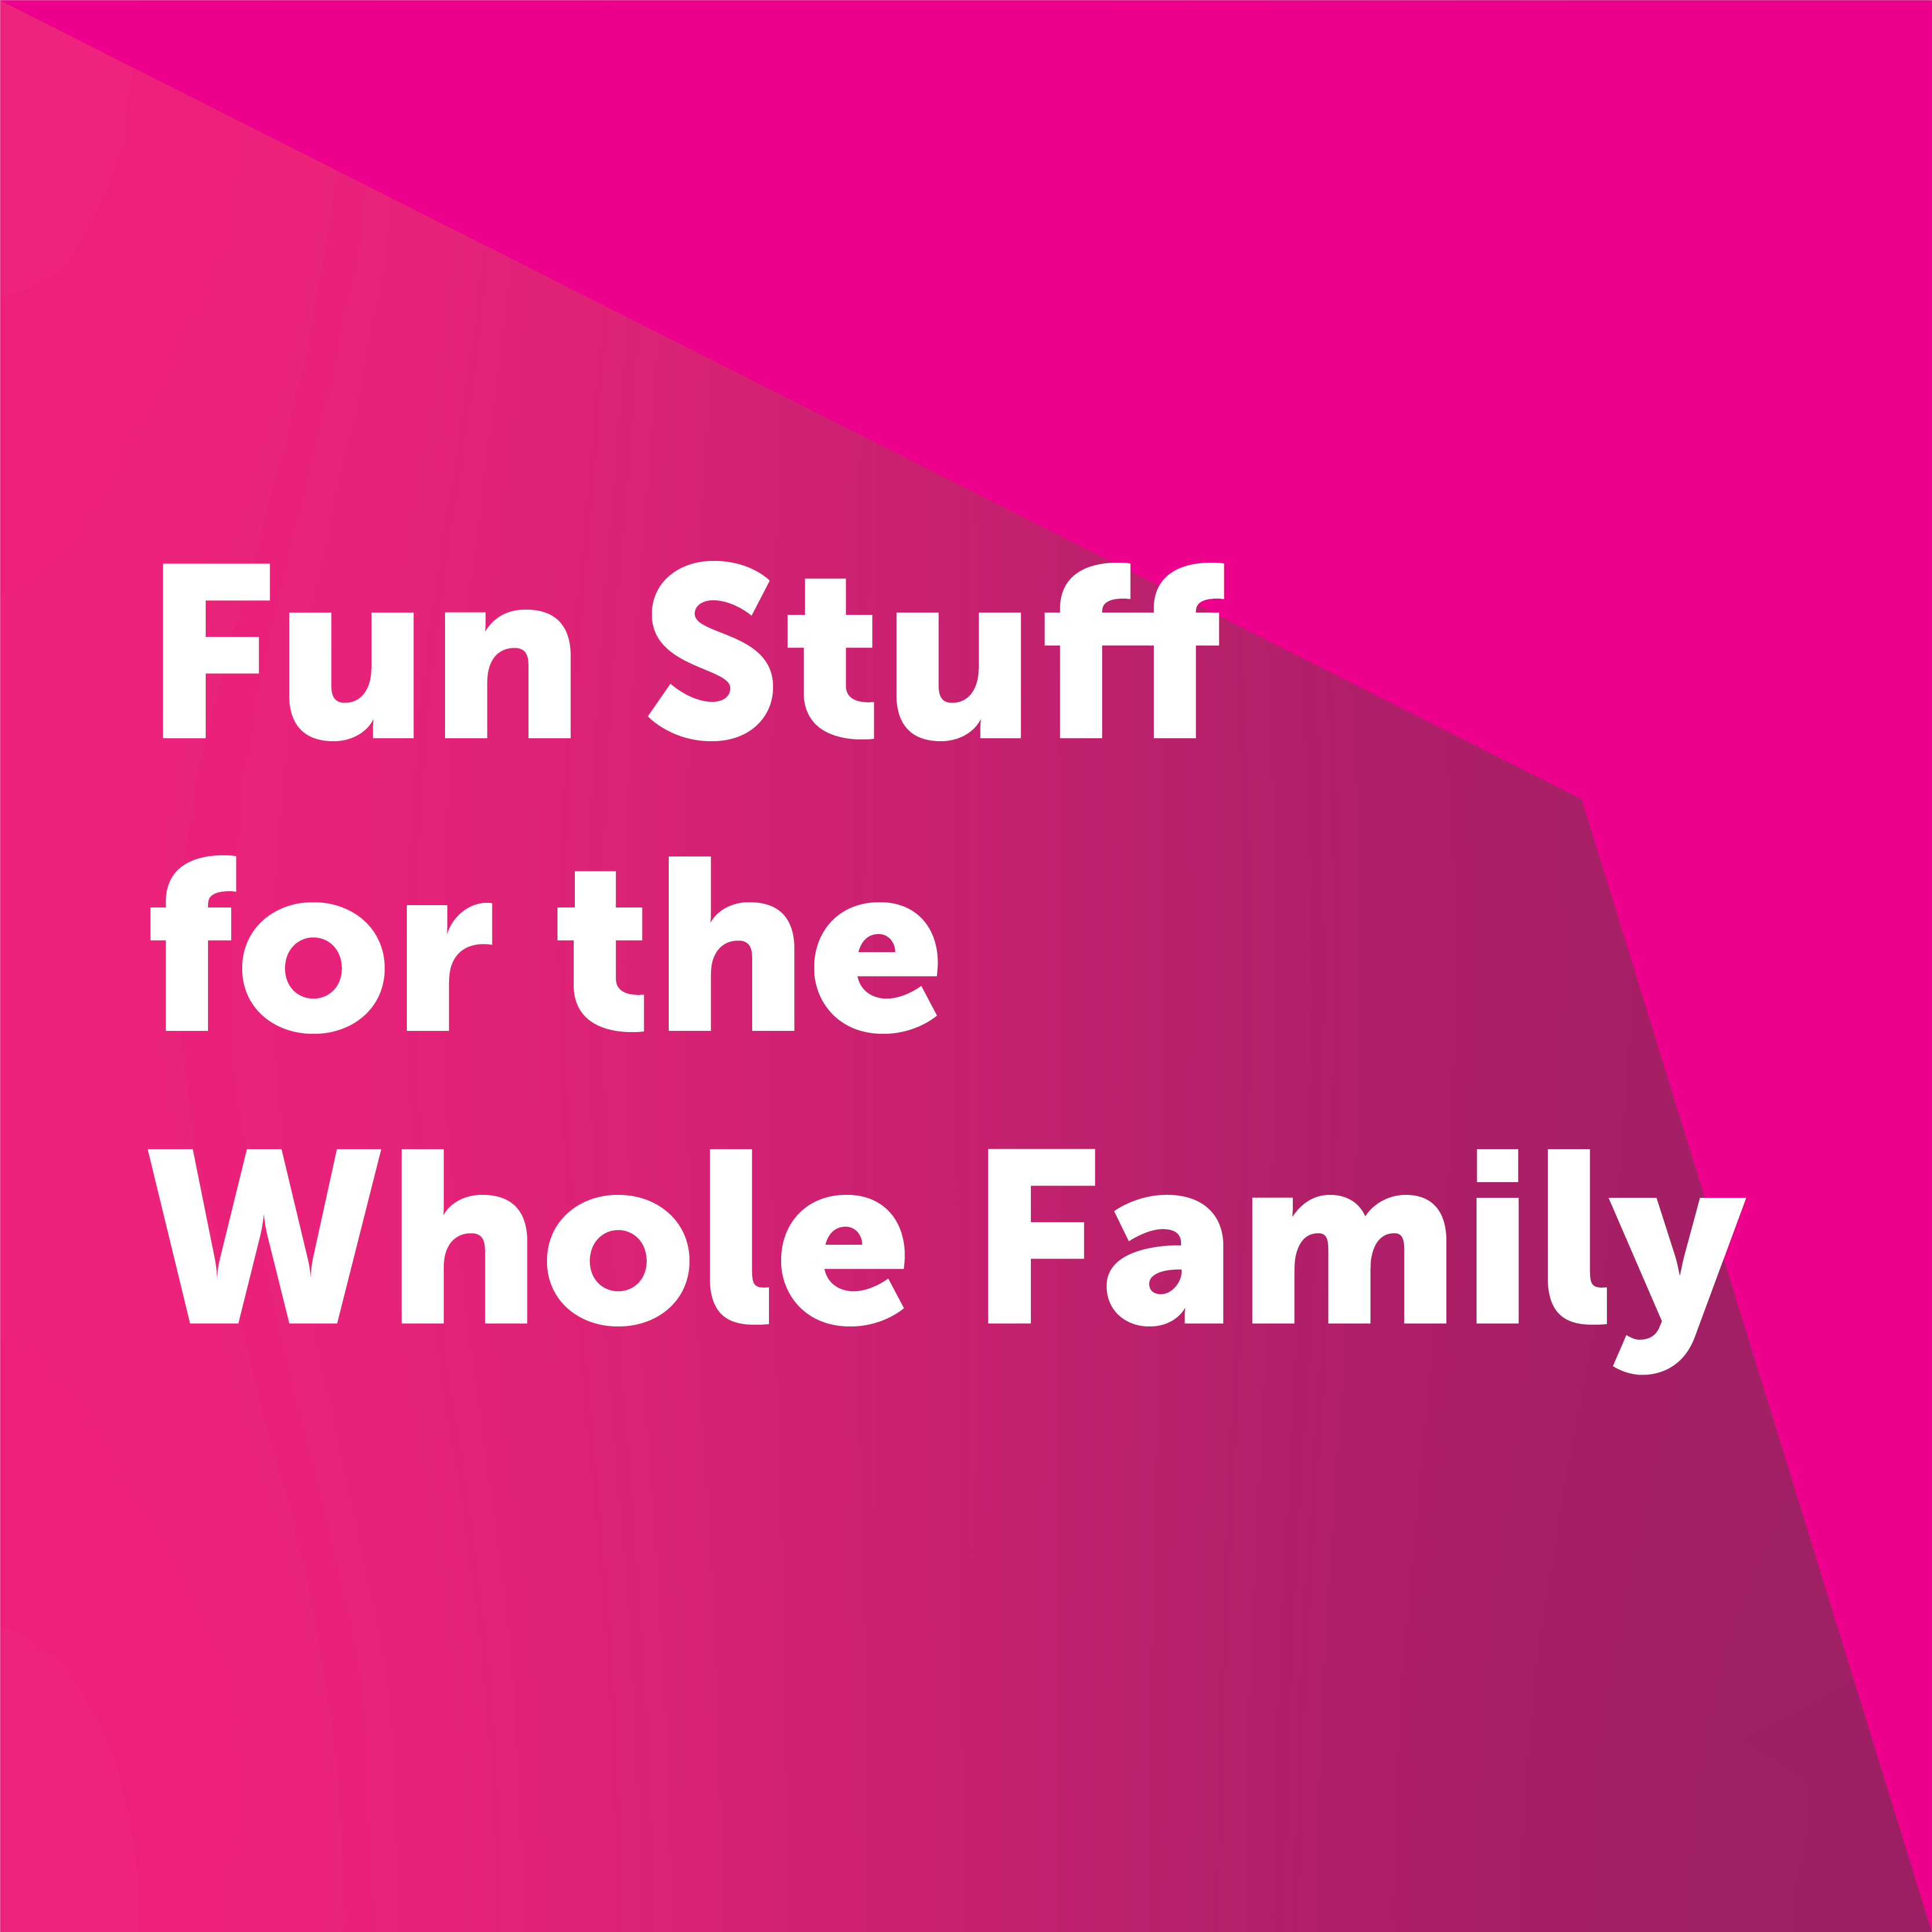 Fun Stuff for the Whole Family